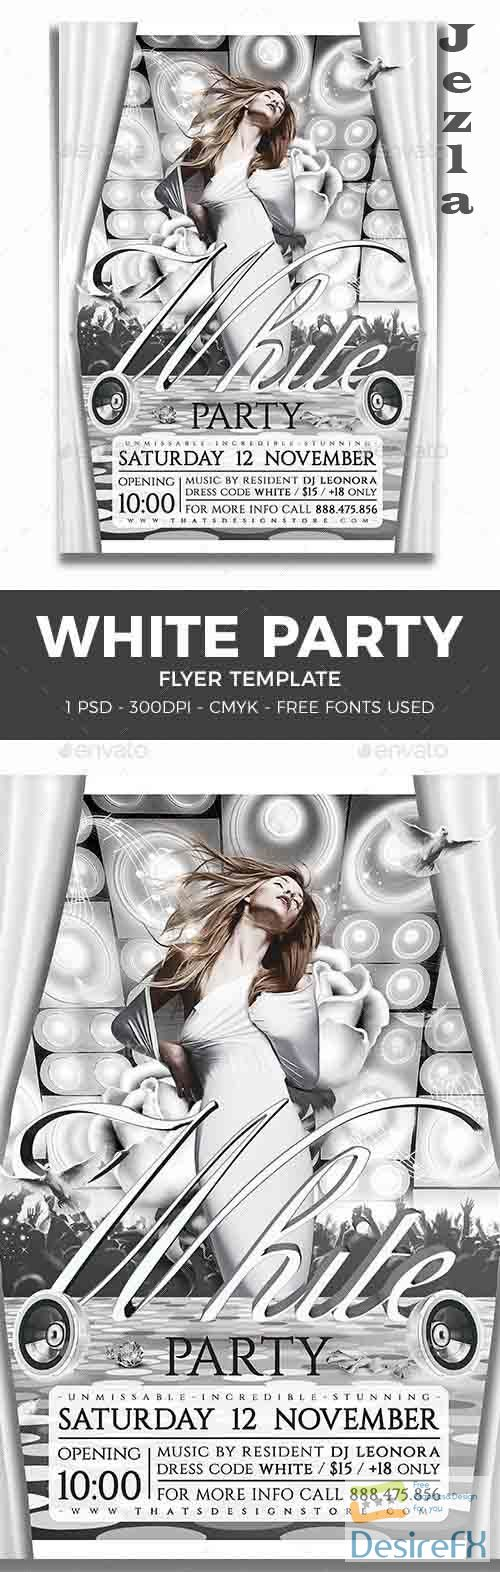 White Party Flyer Template V1 - 8282221 - 91424